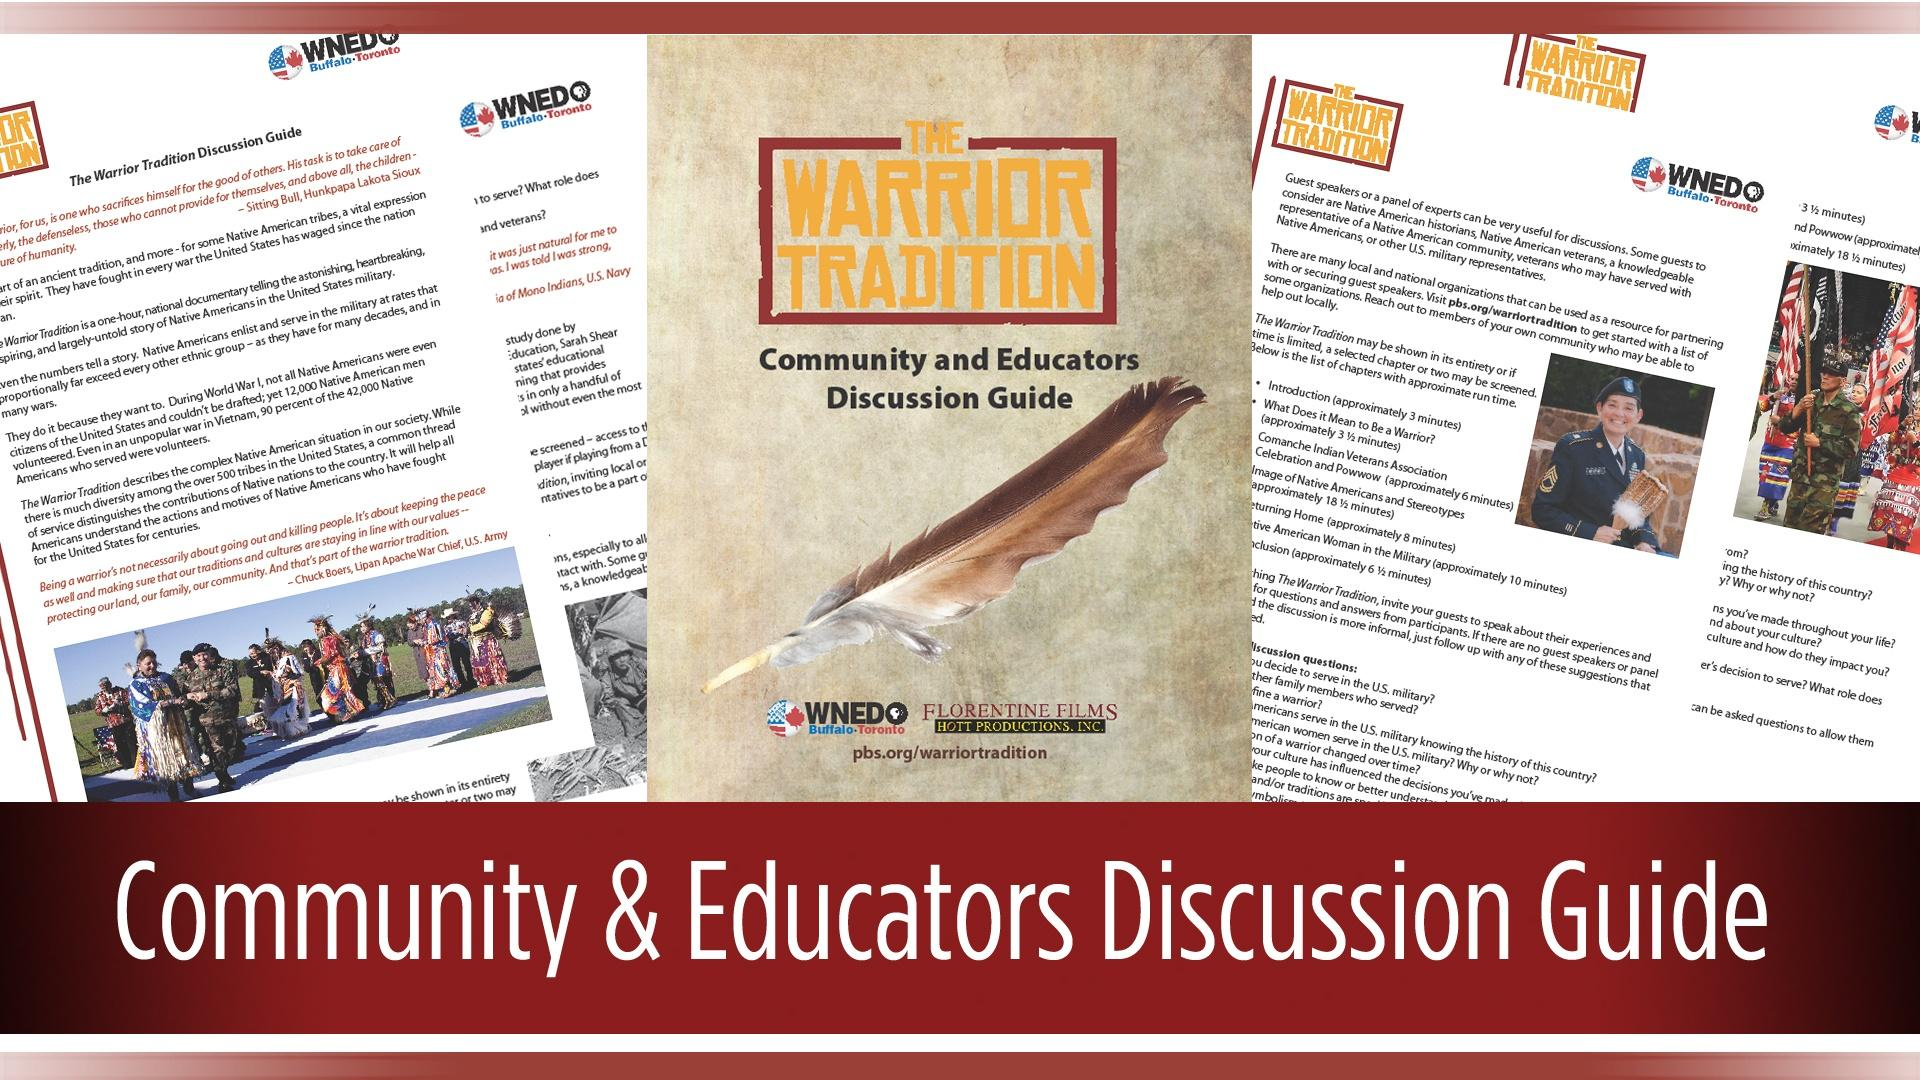 The WArrior Tradition Community & Educators Discussion Guide